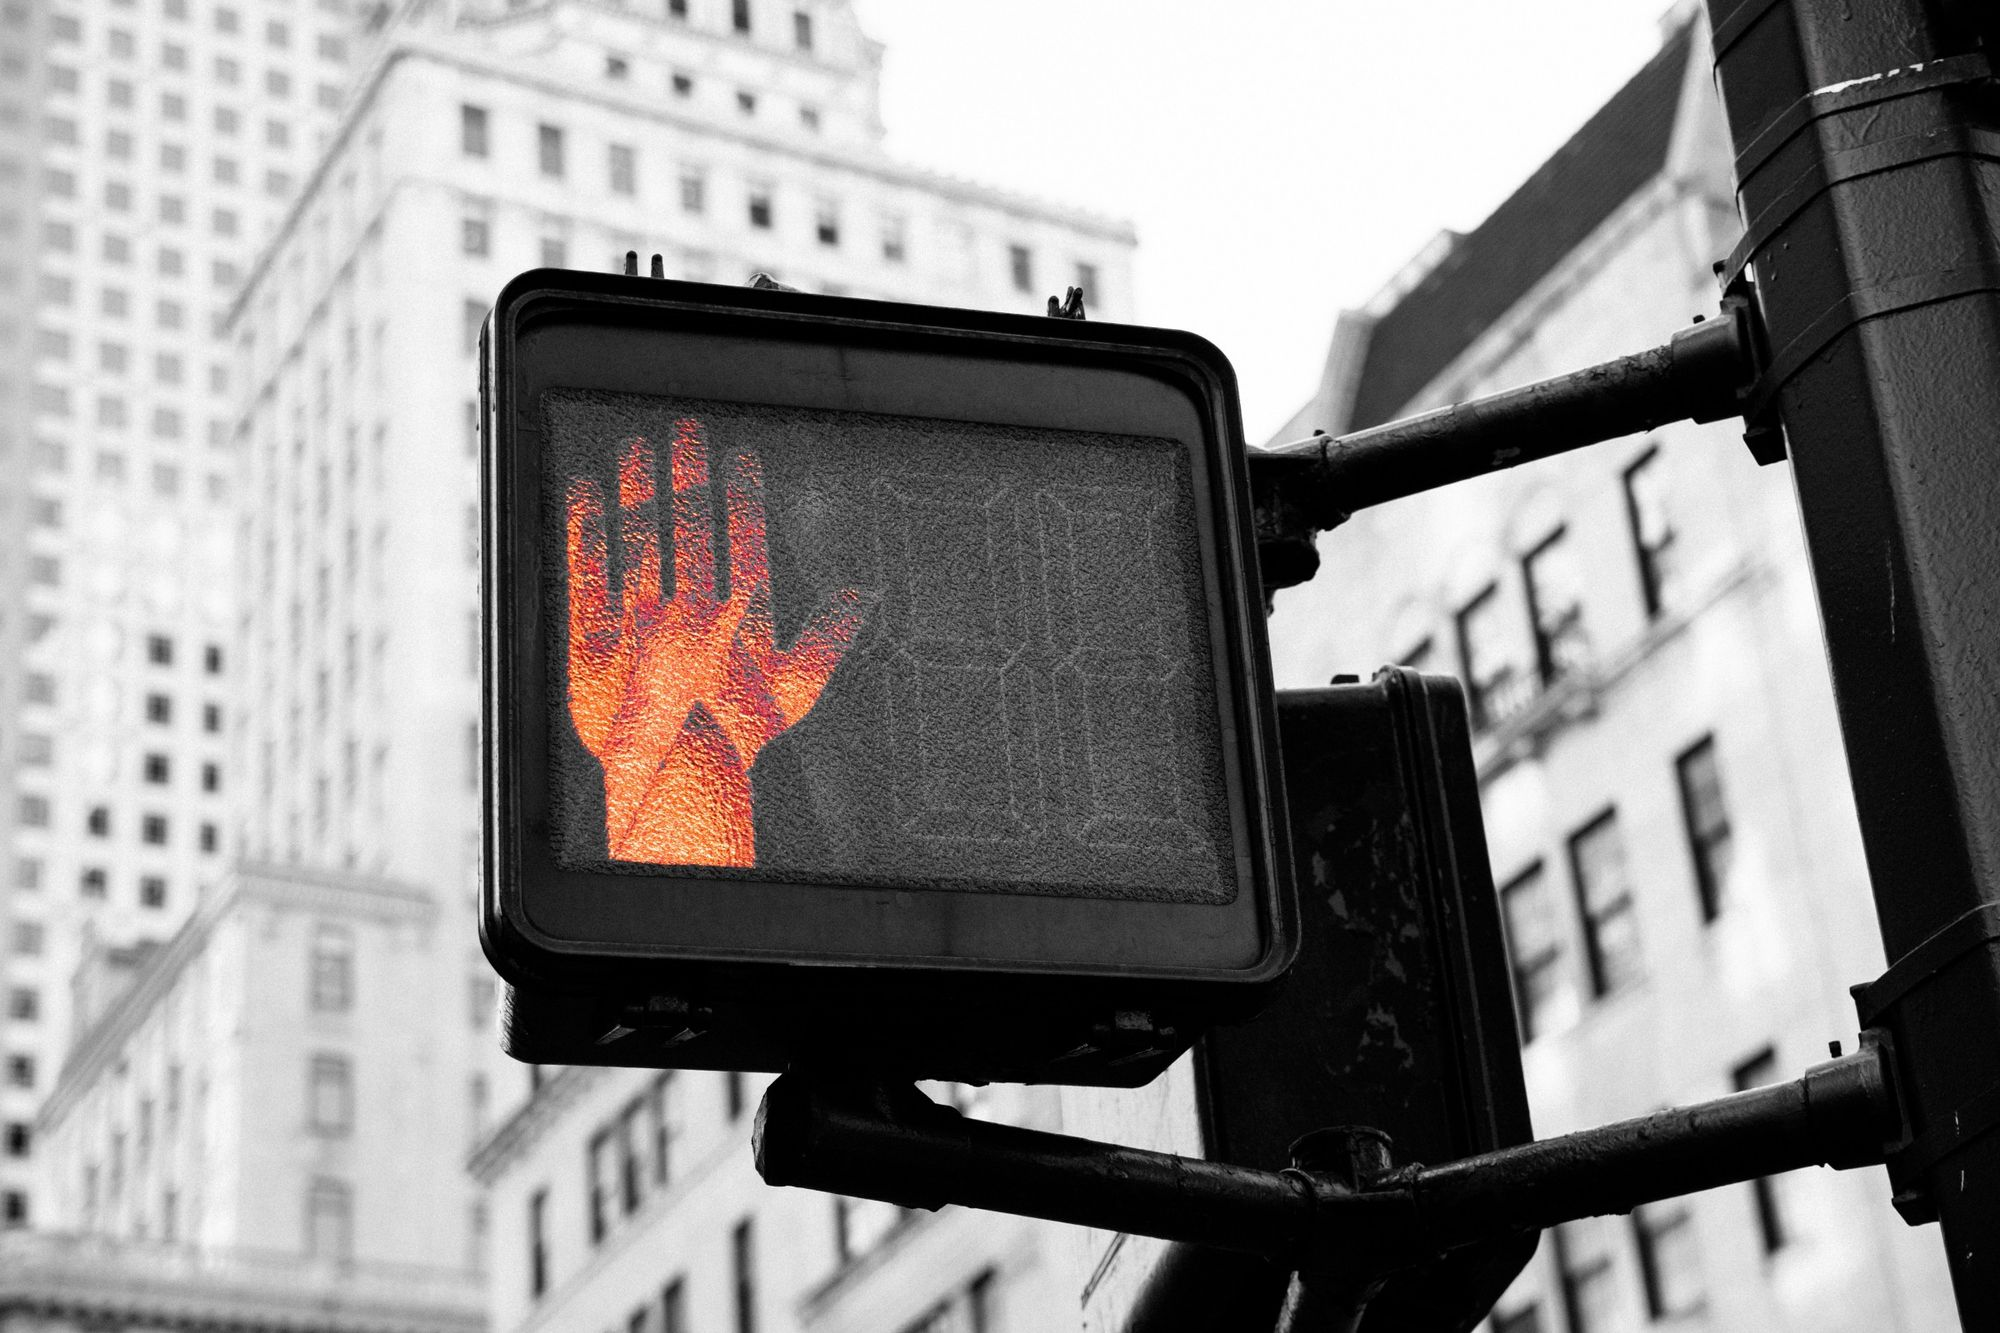 United states black and white photo of a pedestrian signal white the stop hand signal colored orange